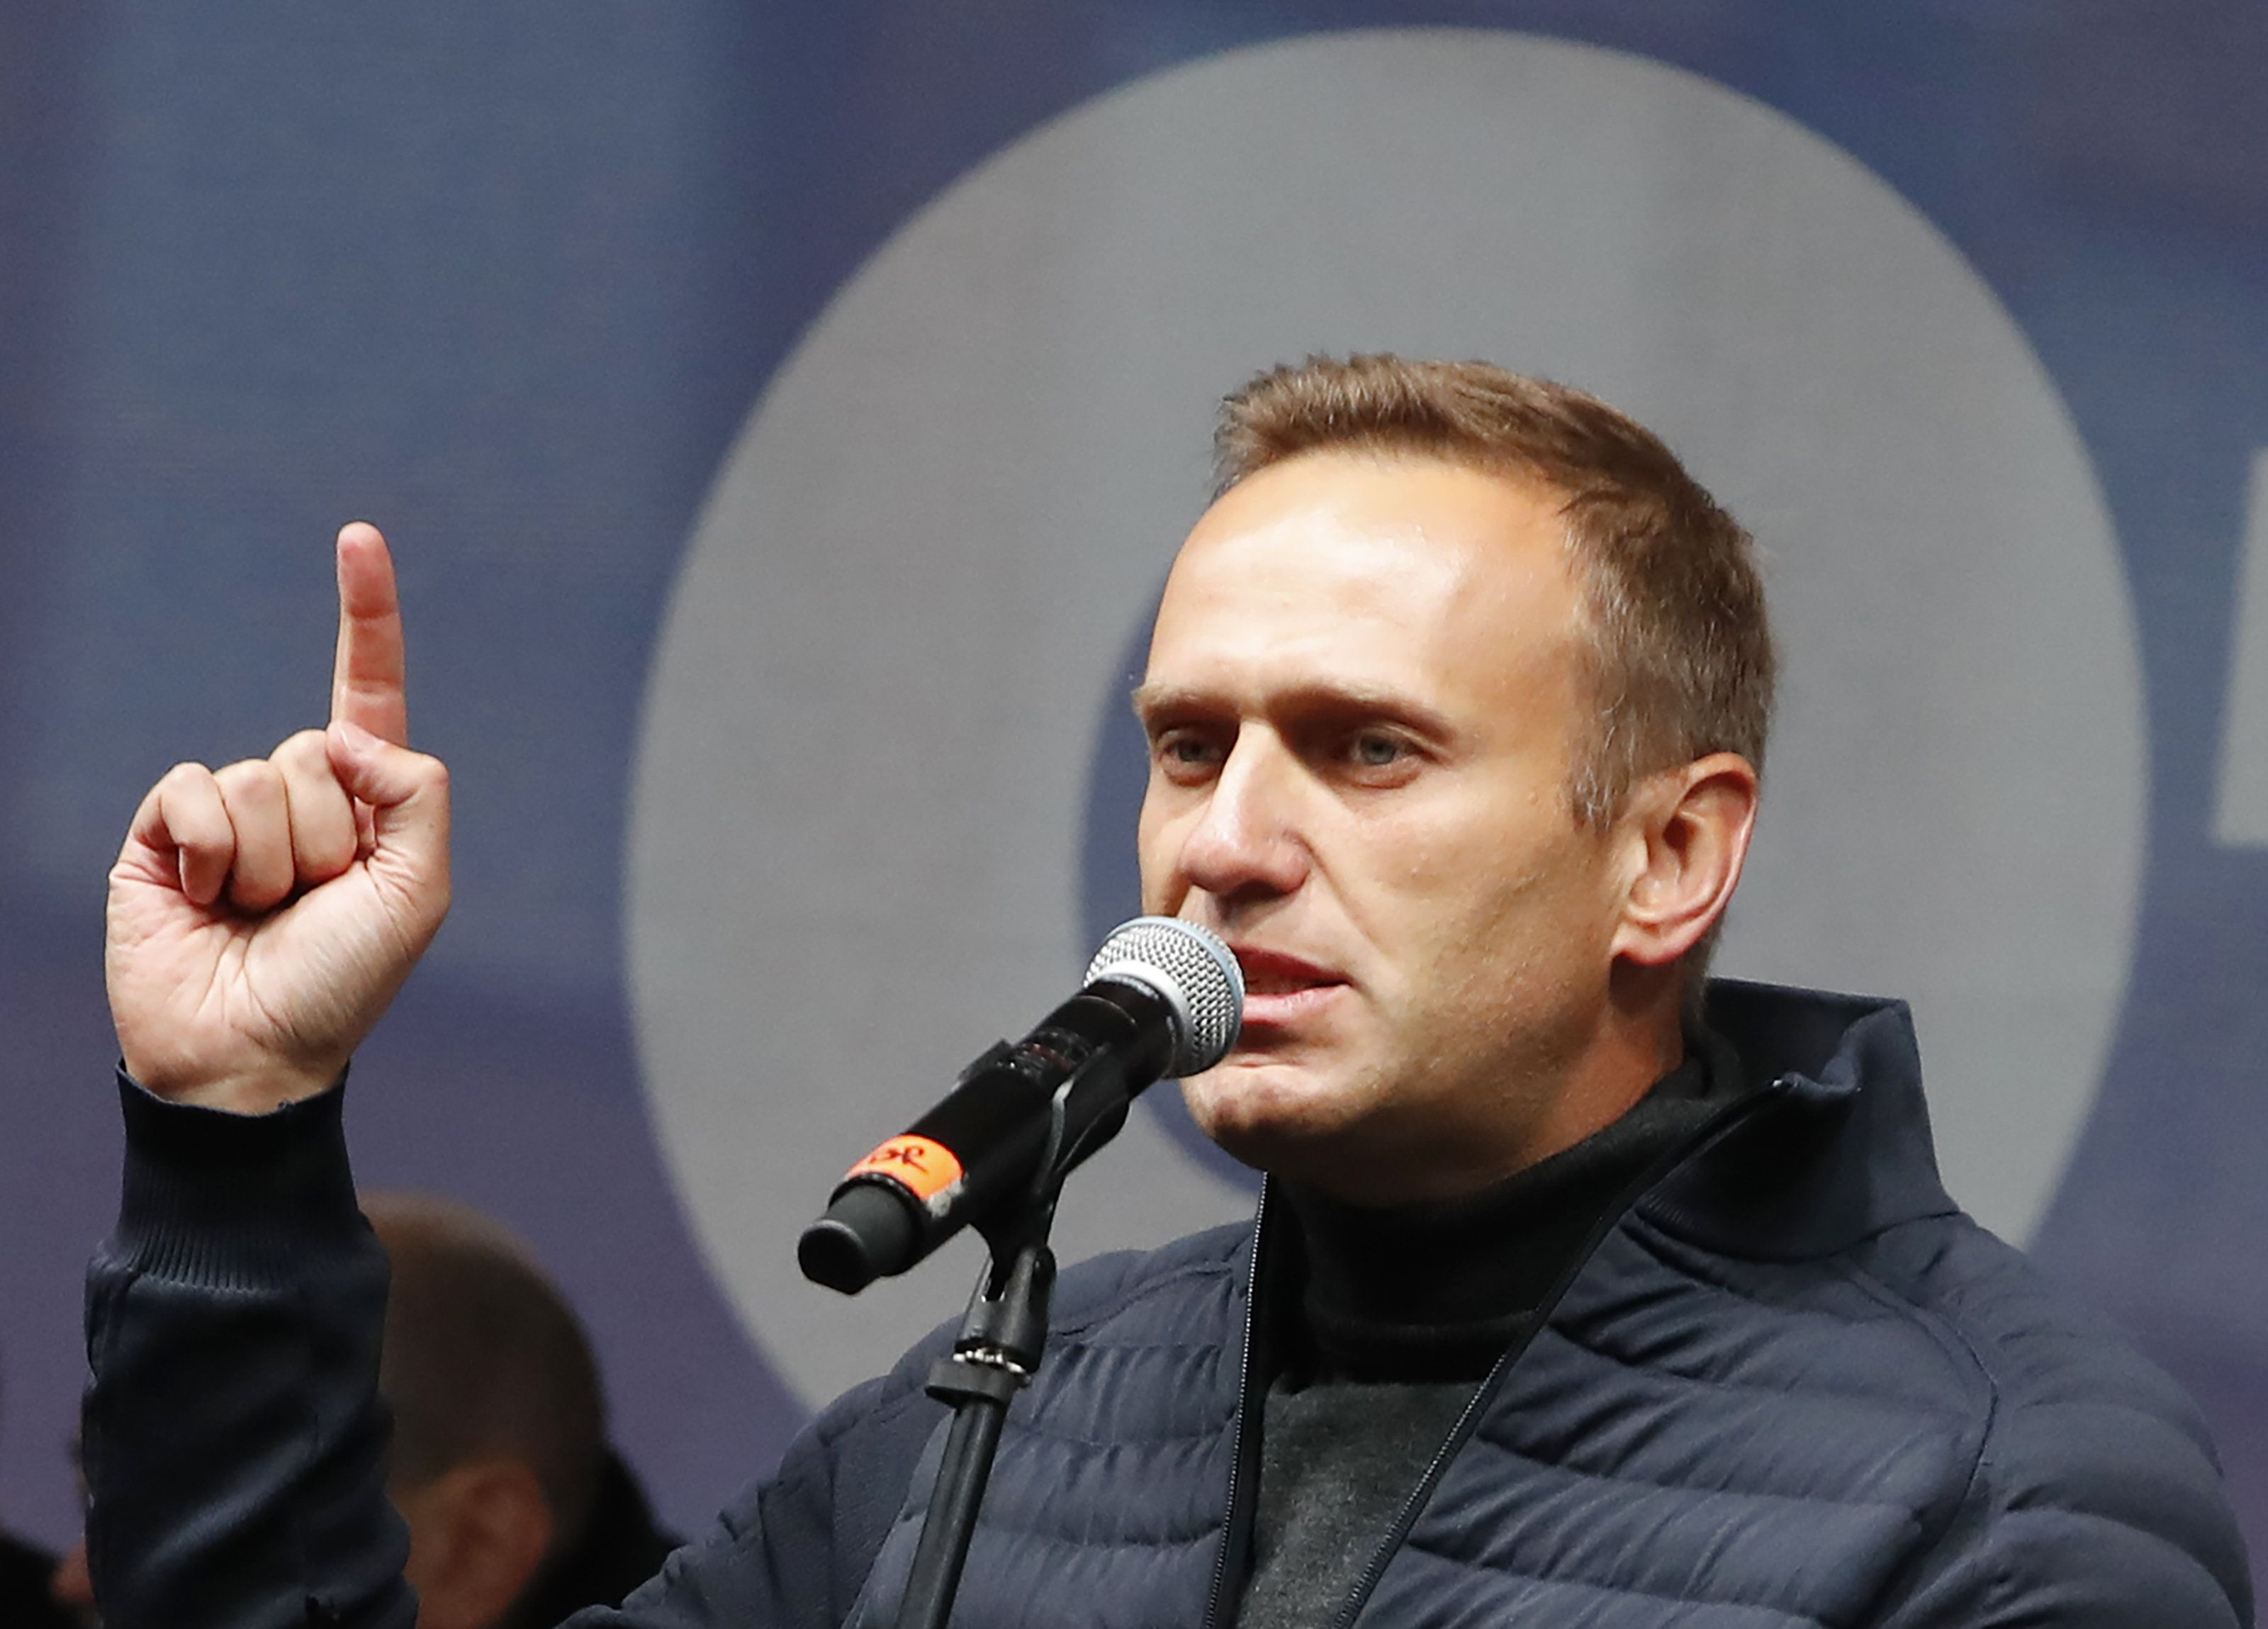 Russian Opposition Leader Alexey Navalny In A Coma After Apparent Poisoning The Globe And Mail